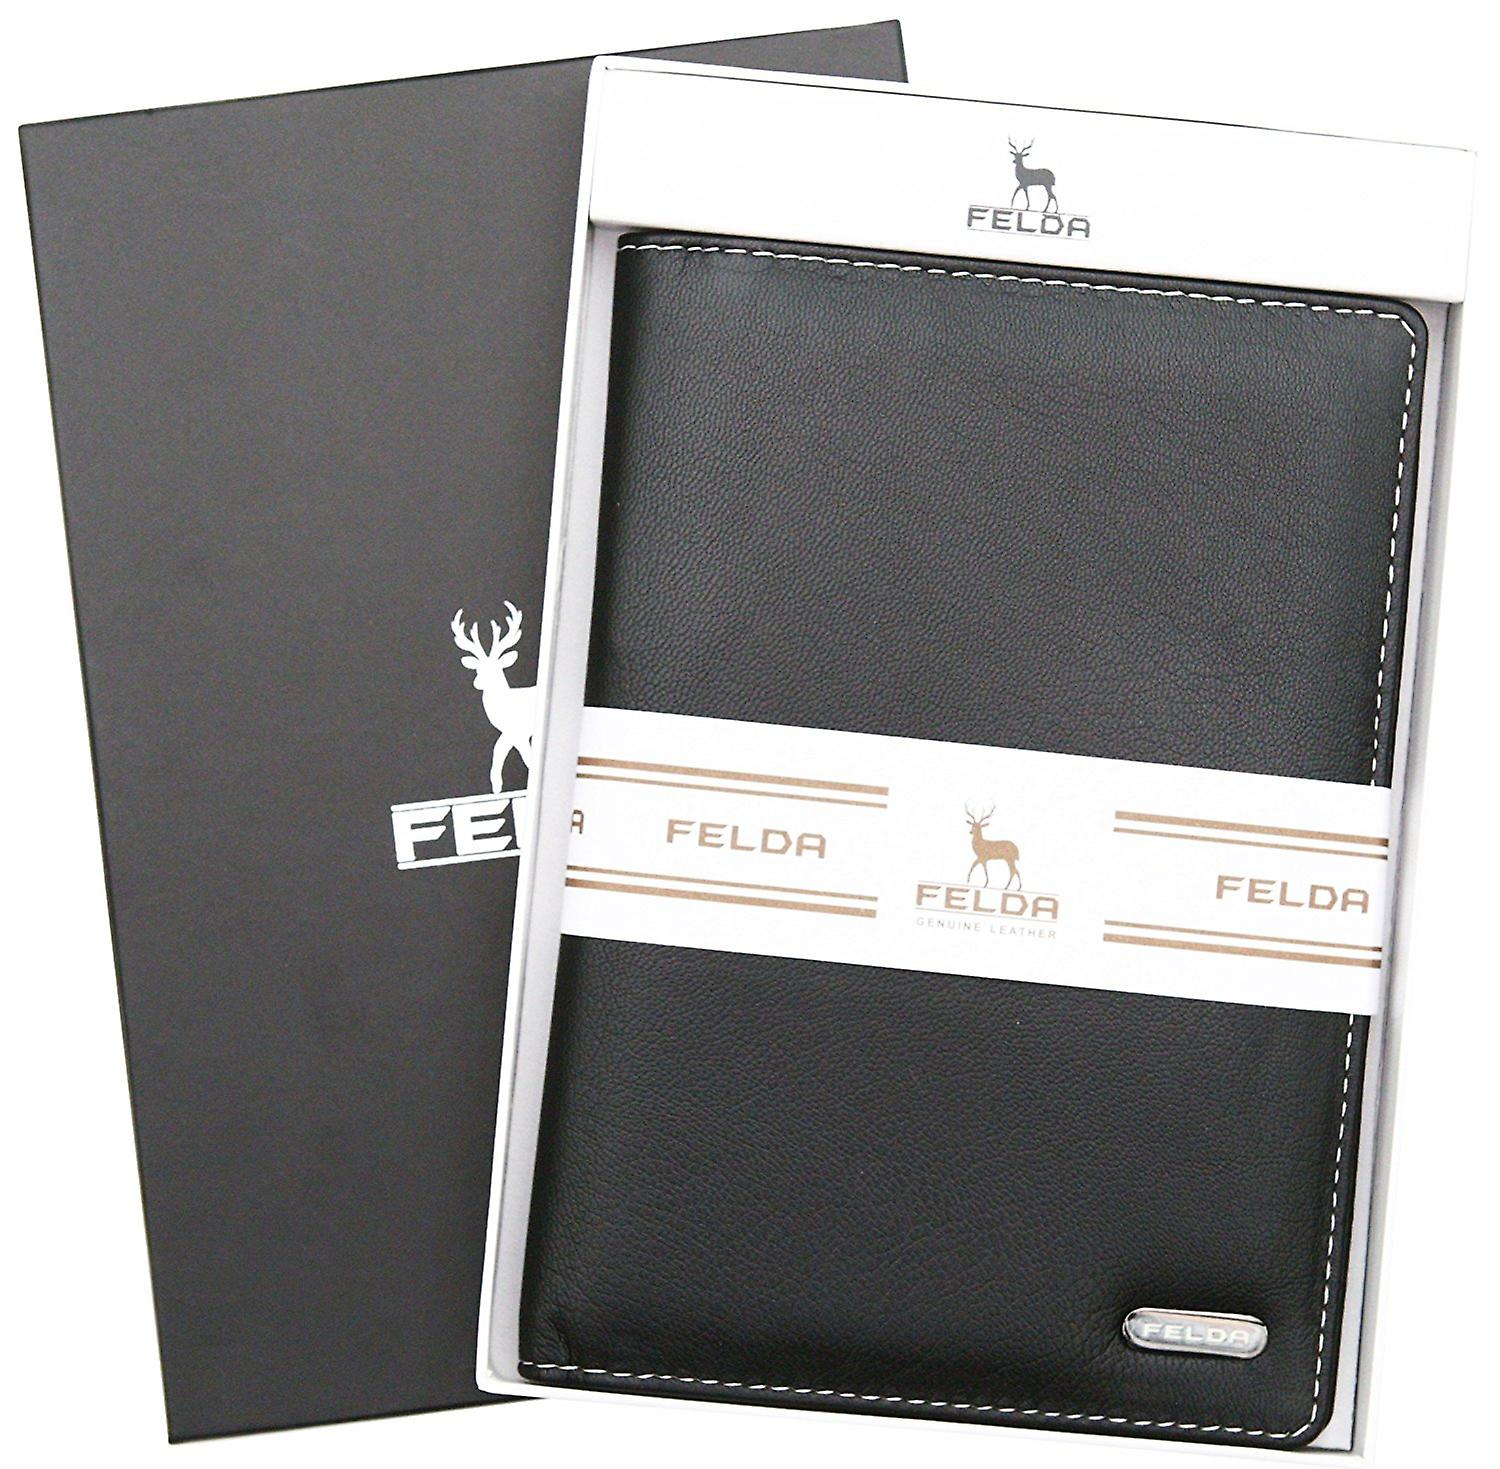 Felda Rfid Blocking Leather Passport Cover Holder Travel Wallet With Credit Card Slots - Gift Boxed